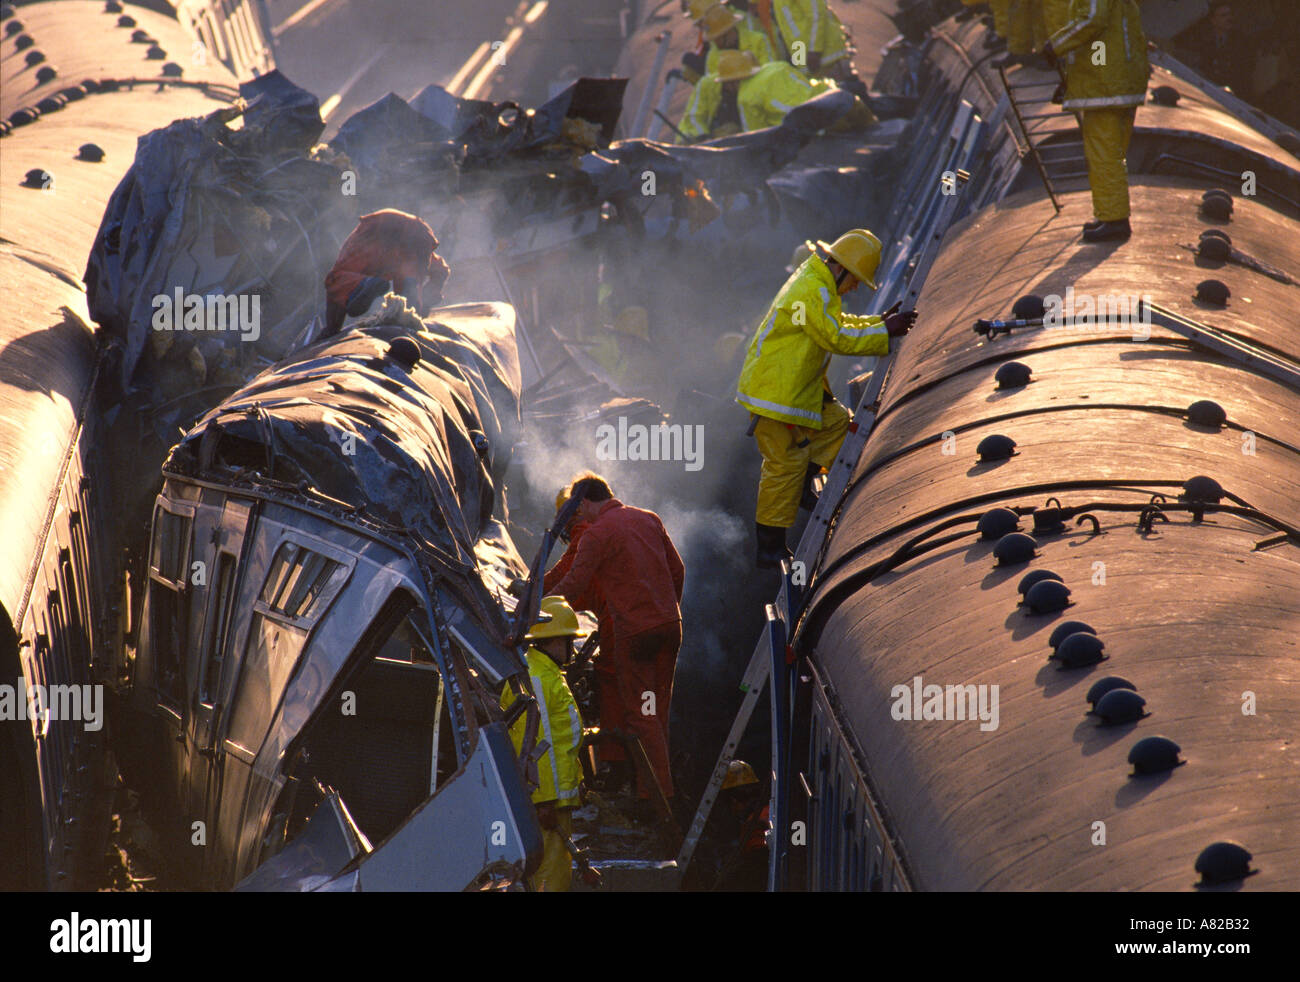 Clapham Train Crash 37 people were killed and 500 injured when three trains crashed in Clapham London on Dec 12th 1988 - Stock Image